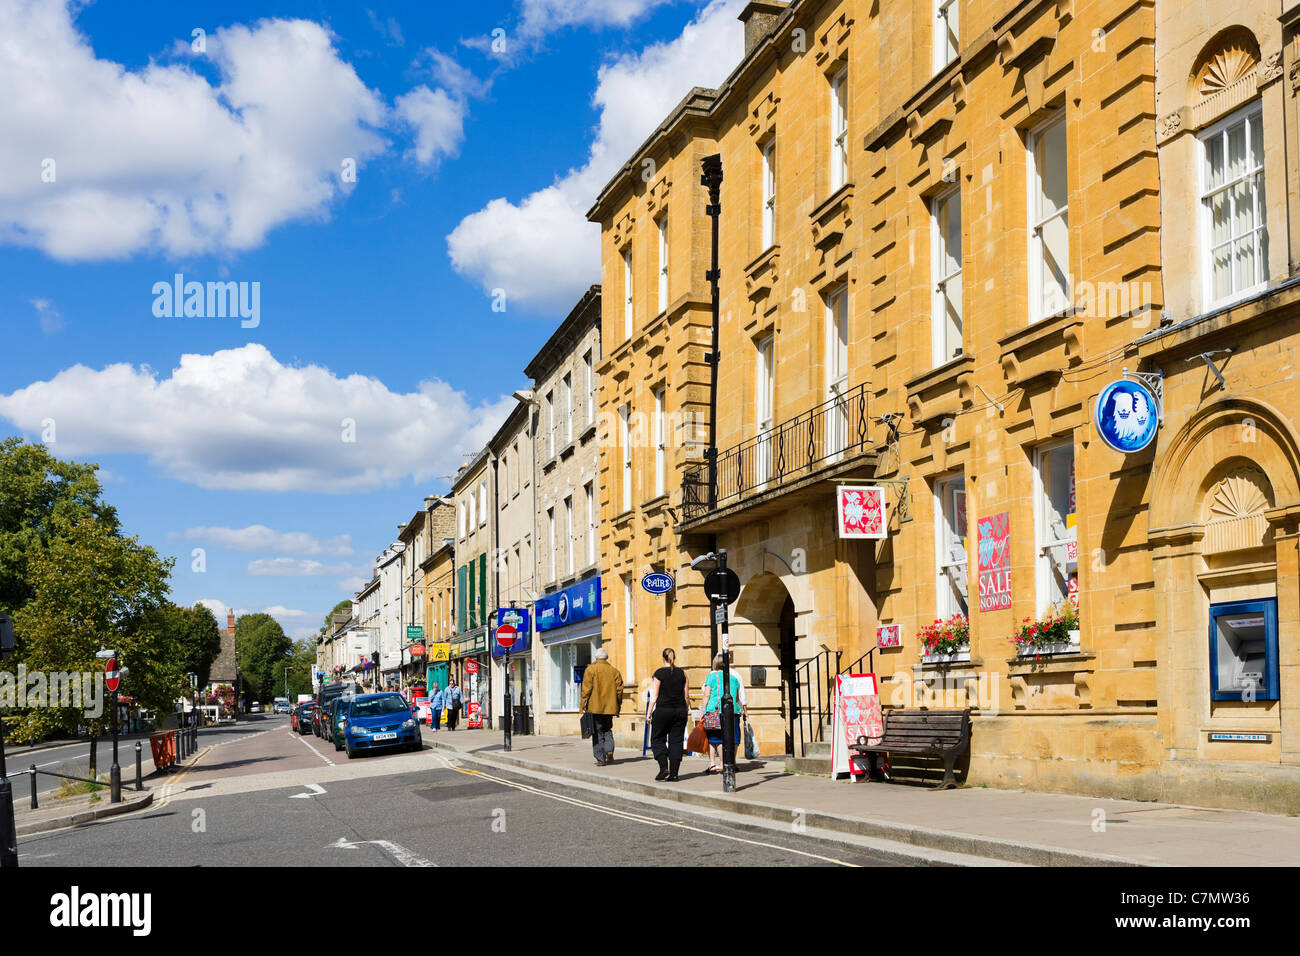 Centre of the Cotswold town of Chipping Norton, Oxfordshire, England, UK - Stock Image